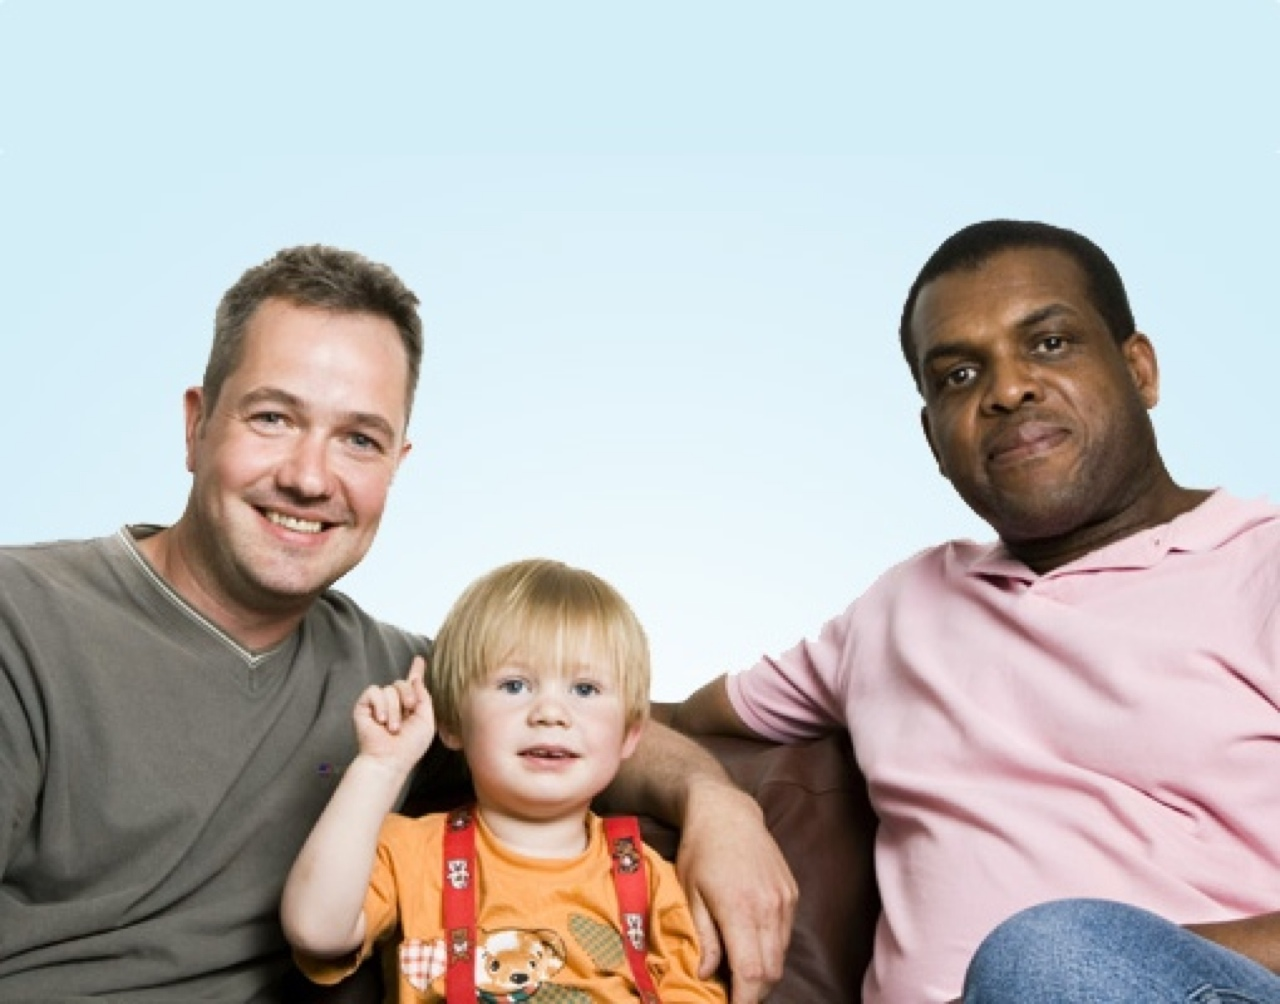 Two middle aged men with a small child